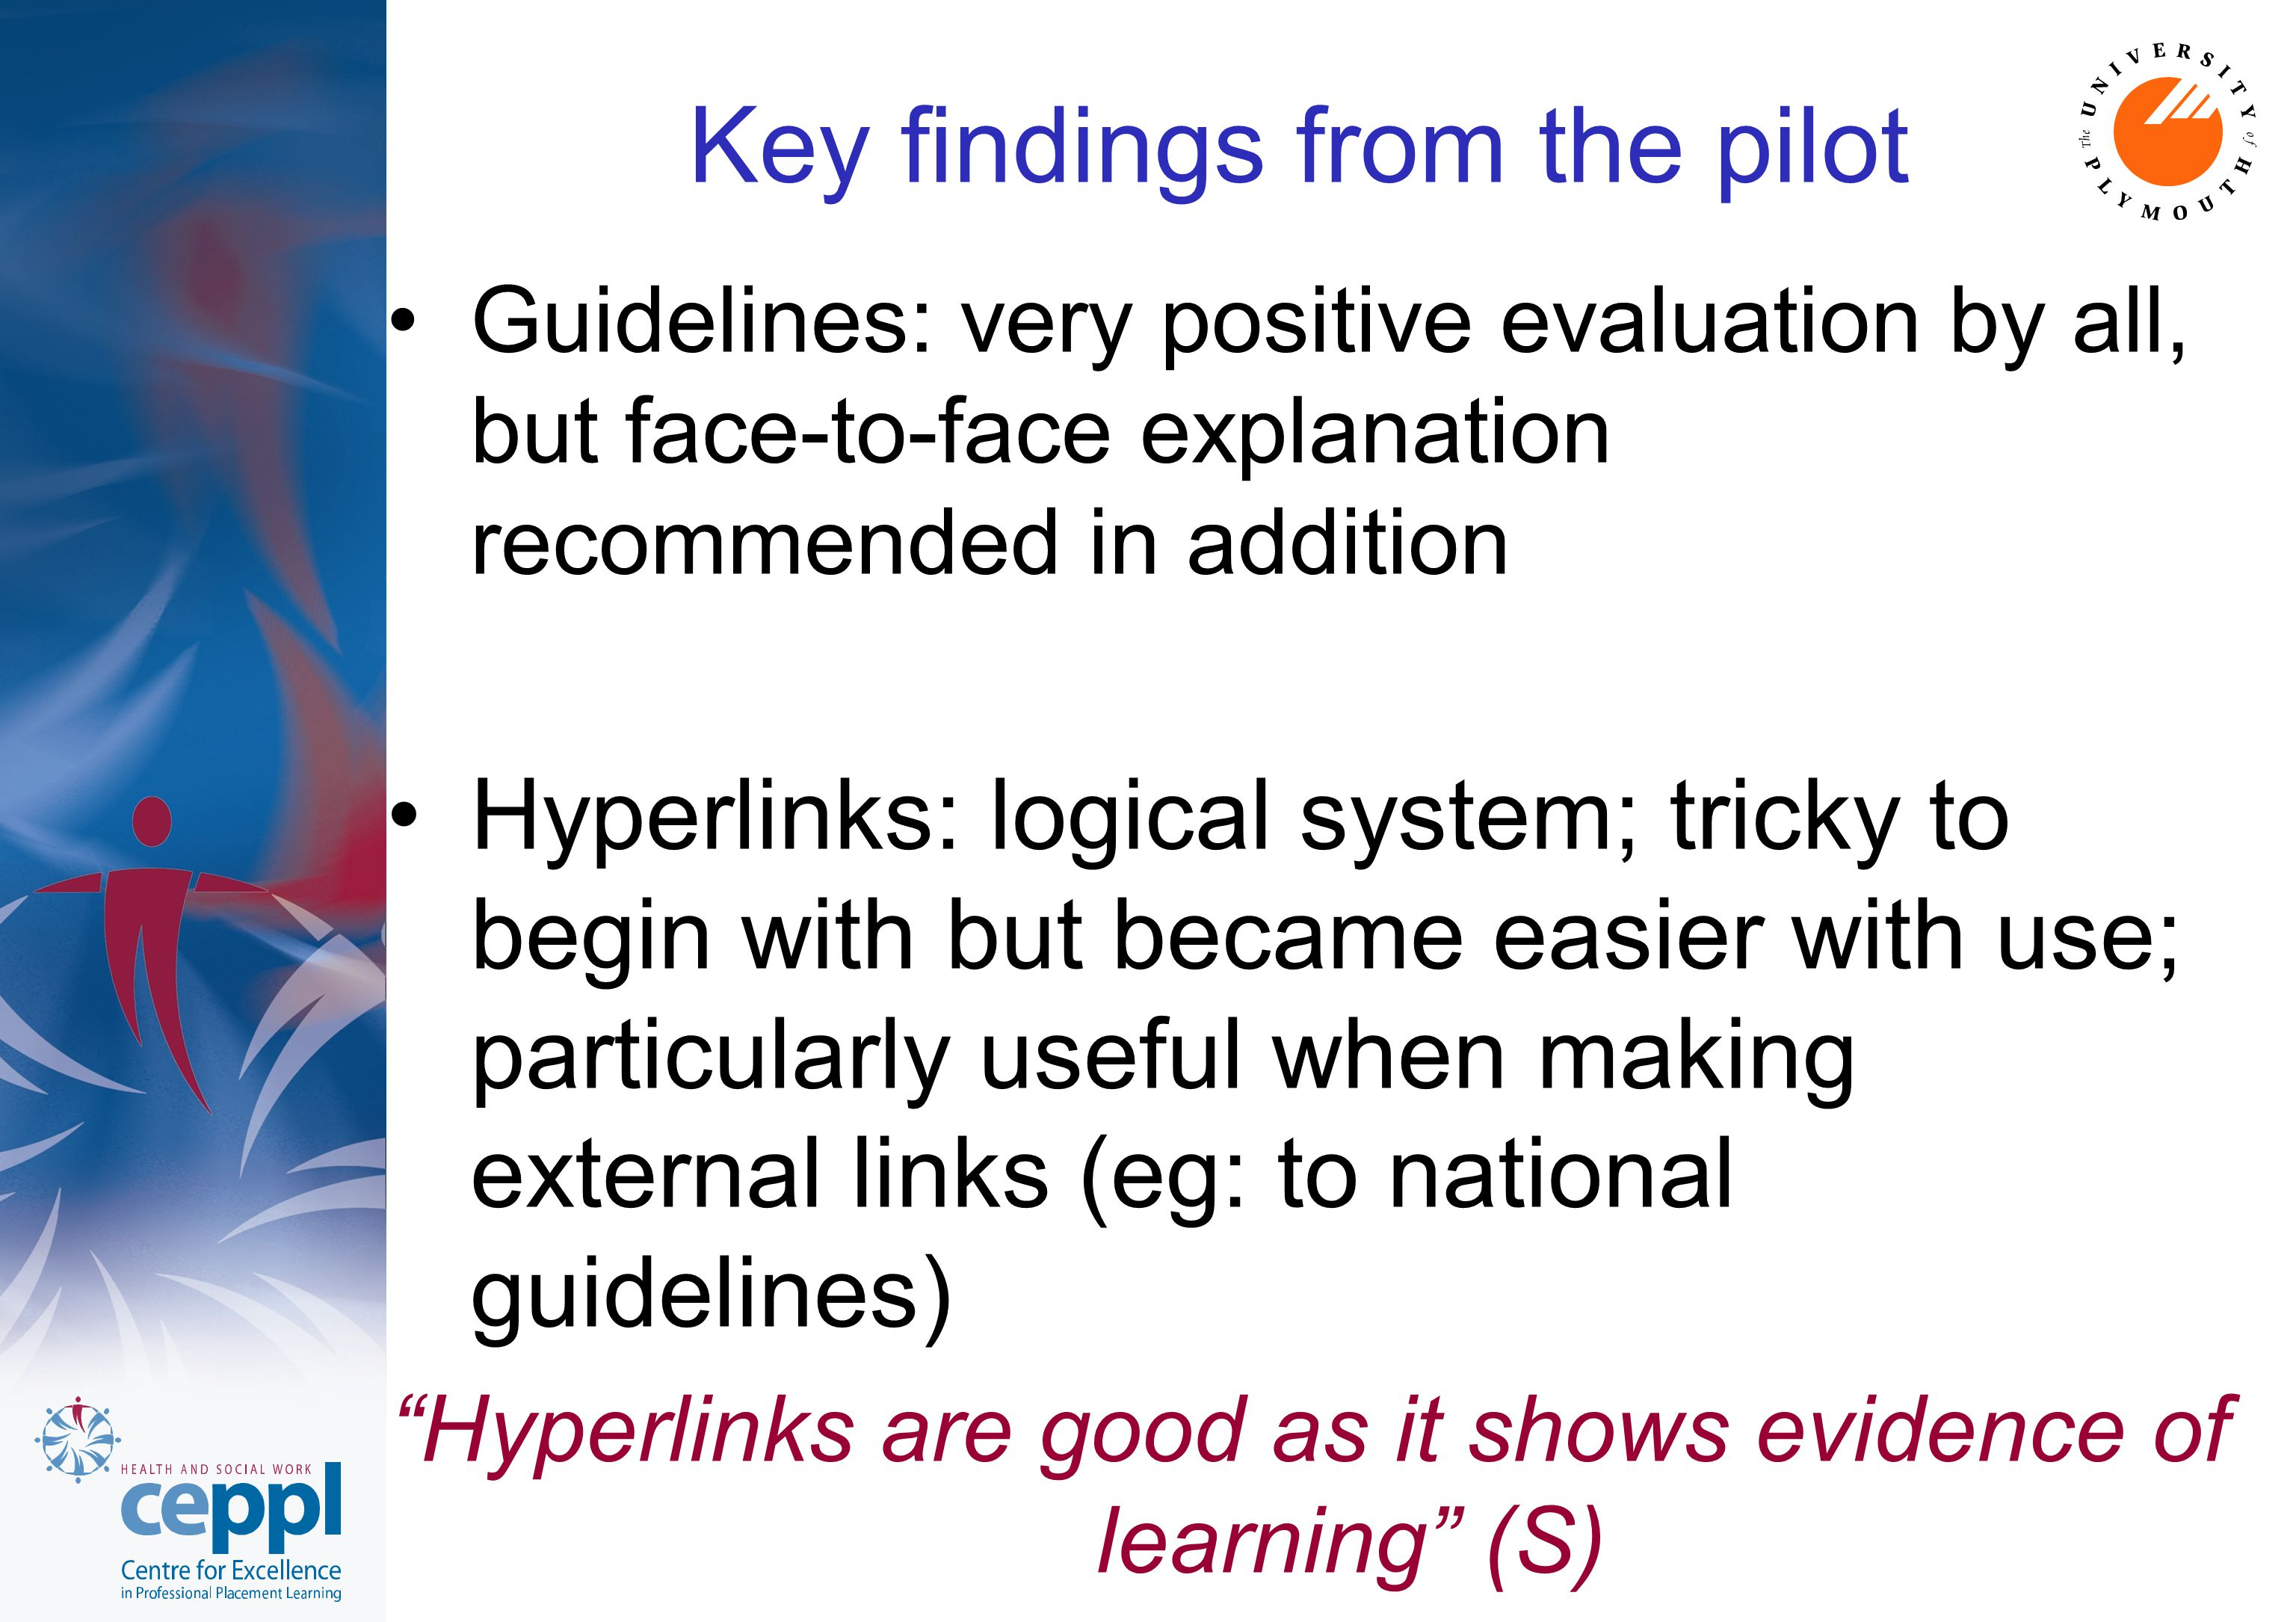 Key findings from the pilot Guidelines: very positive evaluation by all, but face-to-face explanation recommended in addition Hyperlinks: logical system; tricky to begin with but became easier with use; particularly useful when making external links (eg: to national guidelines) Hyperlinks are good as it shows evidence of learning (S)